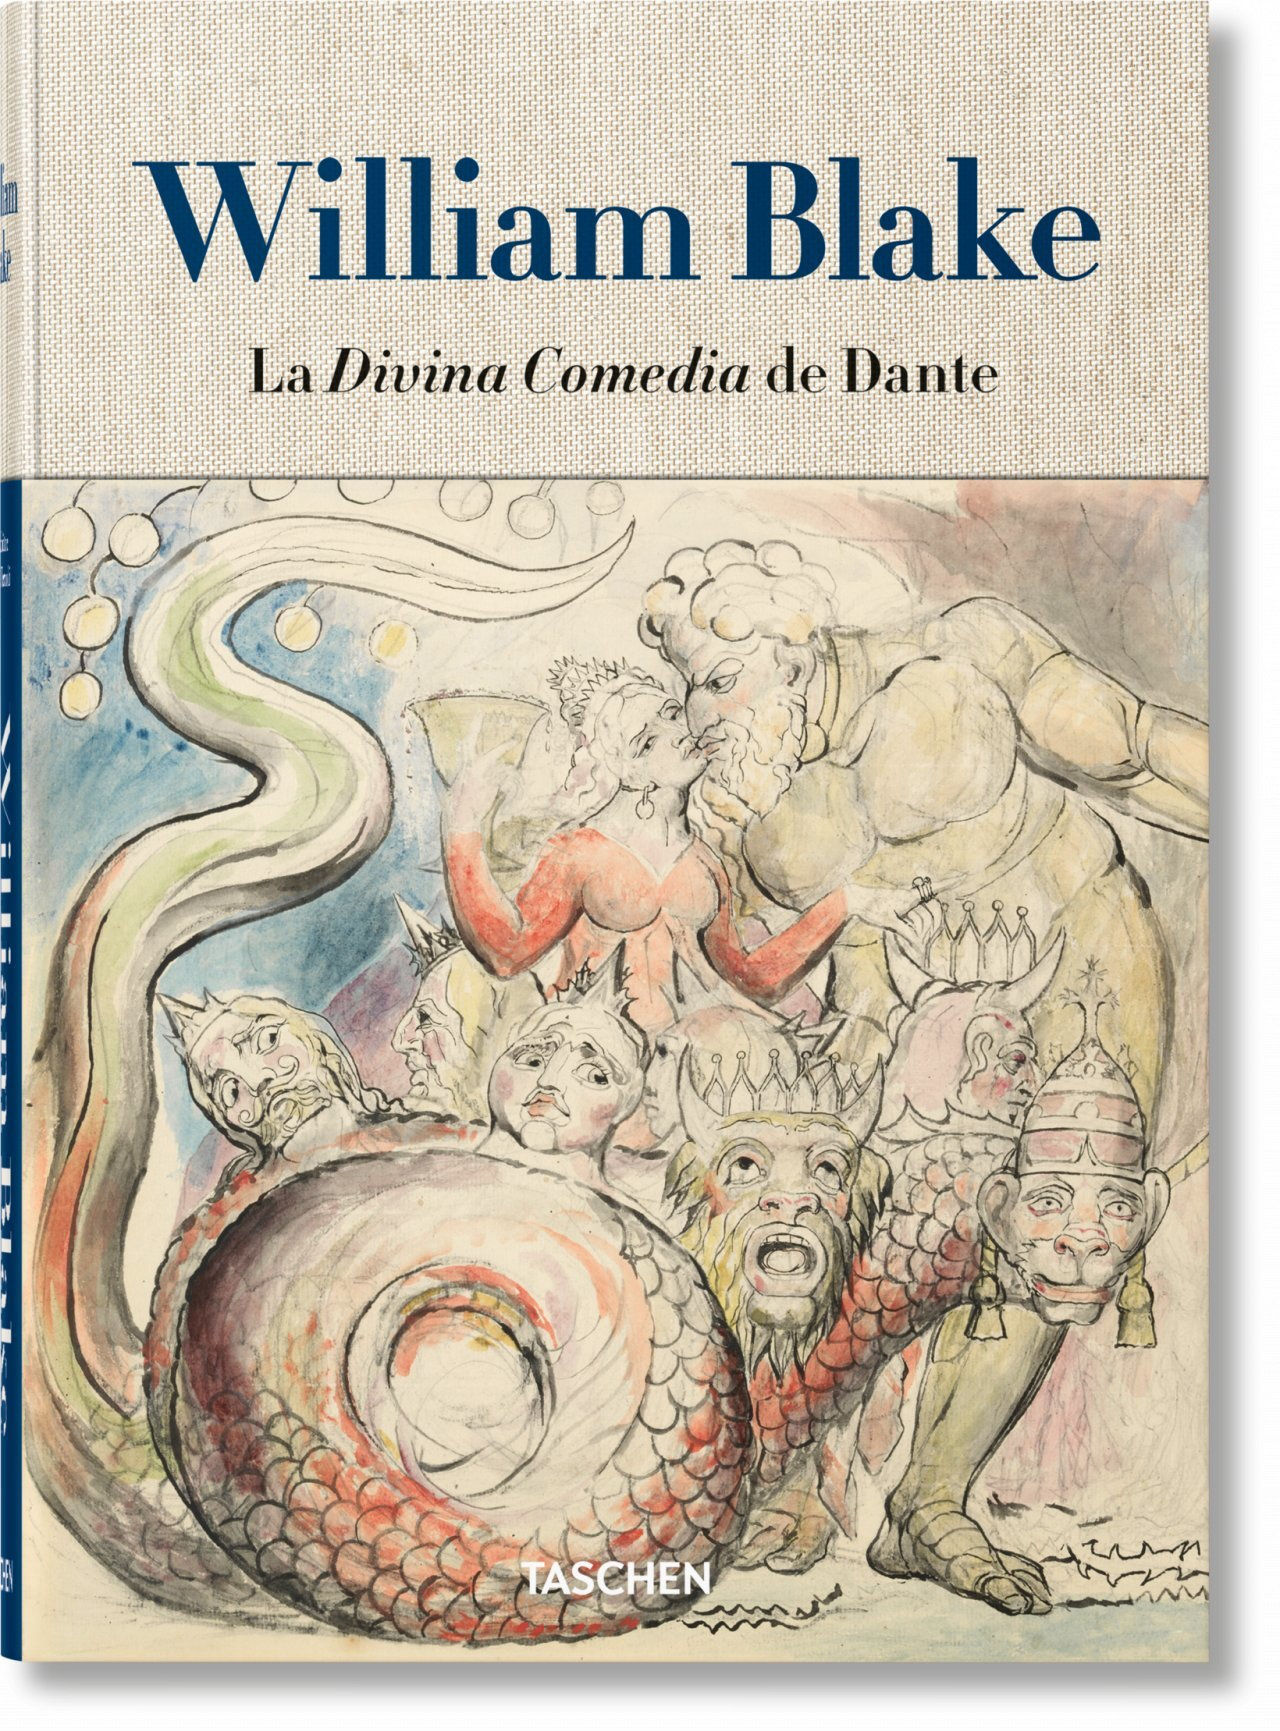 WILLIAM BLAKE LA DIVINA COMEDIA DE DANTE LOS DIBUJOS COMPLETOS